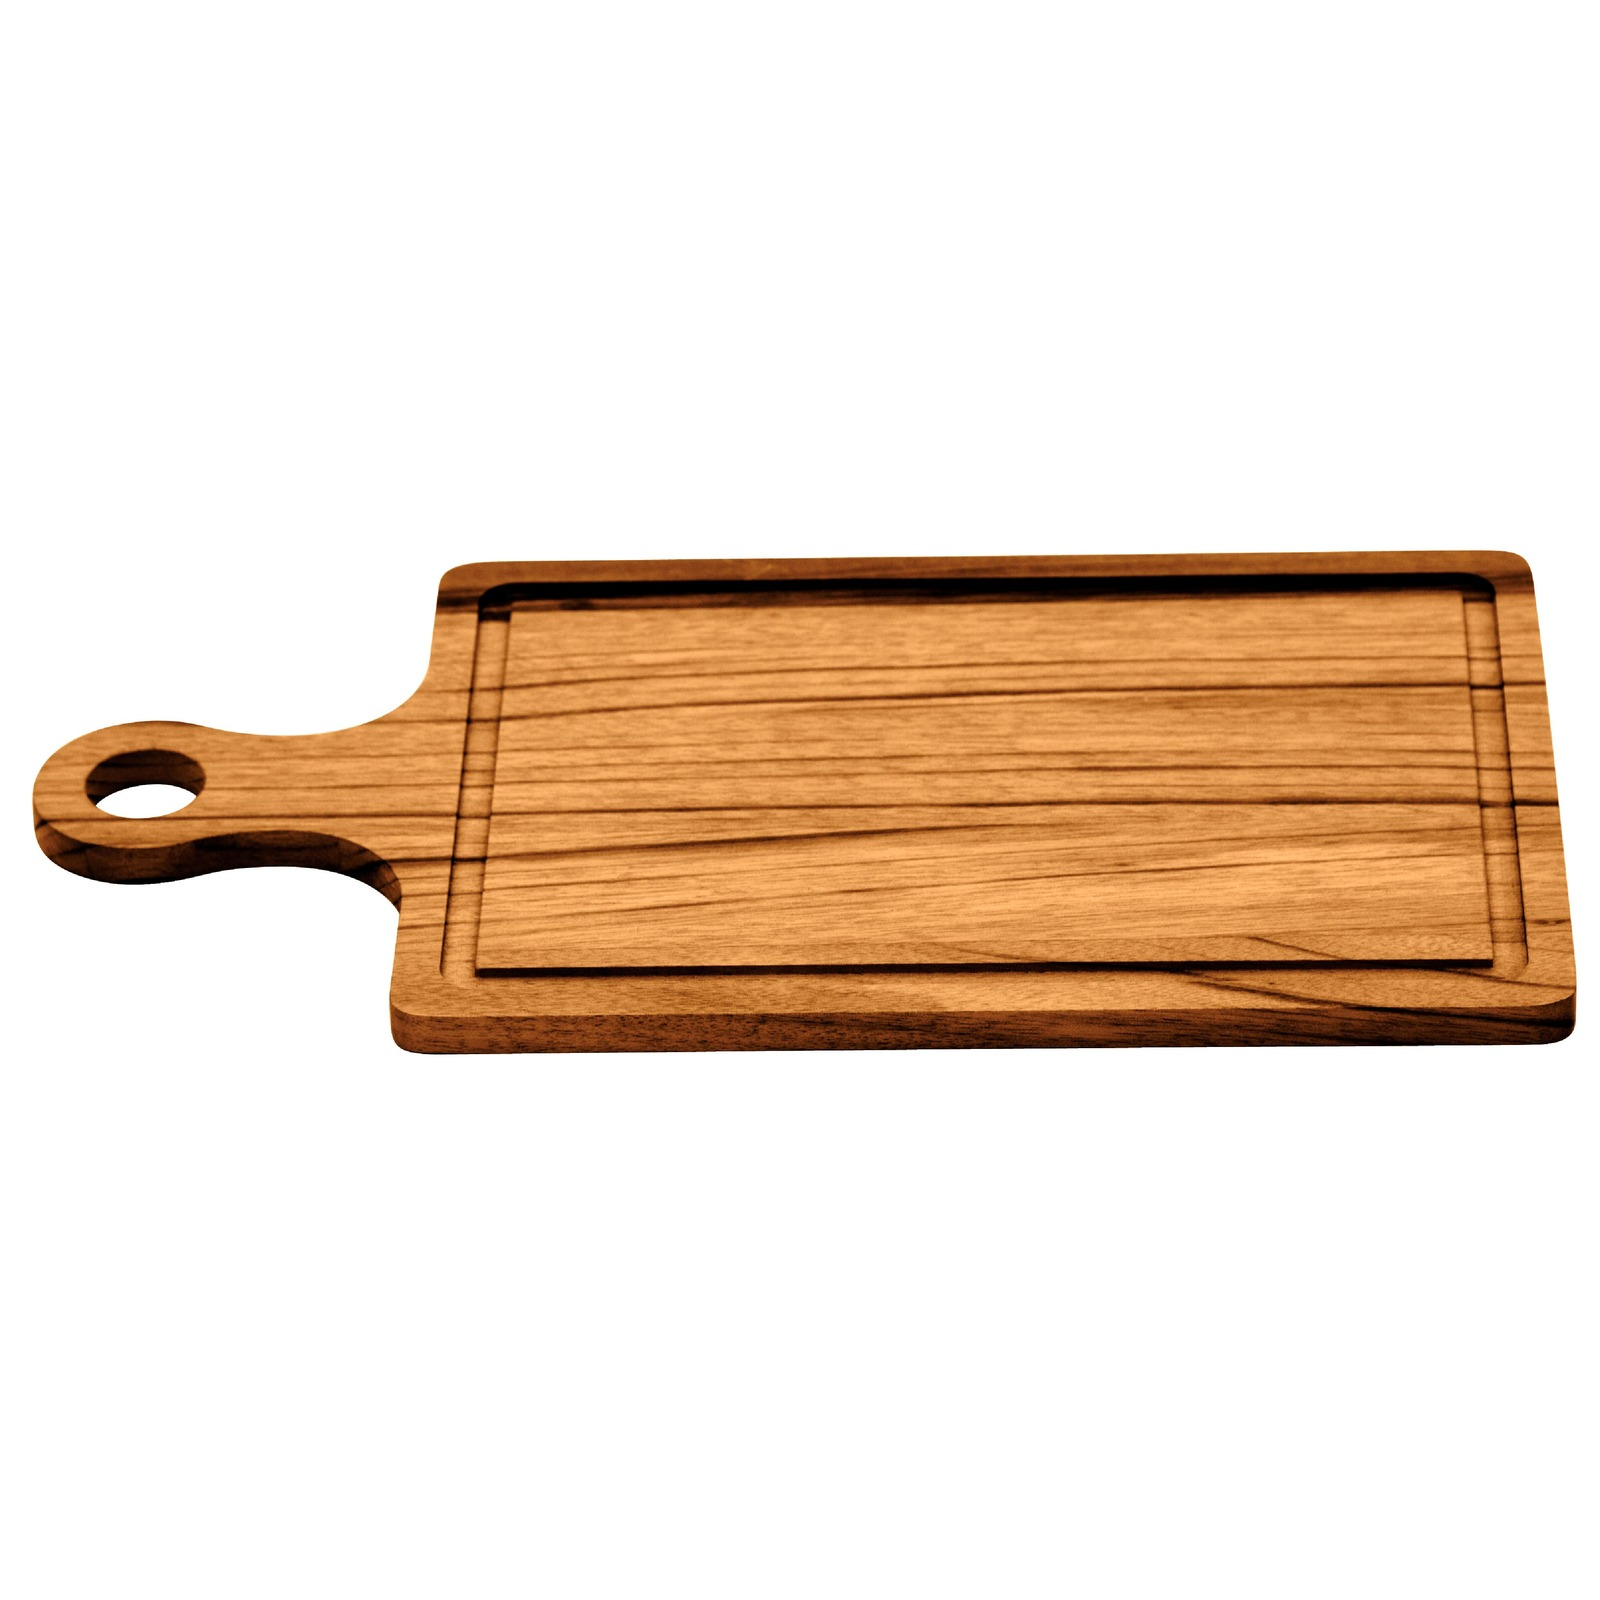 Tramontina Cutting and serving board L40.0 x W21.0 x H1.2 cm